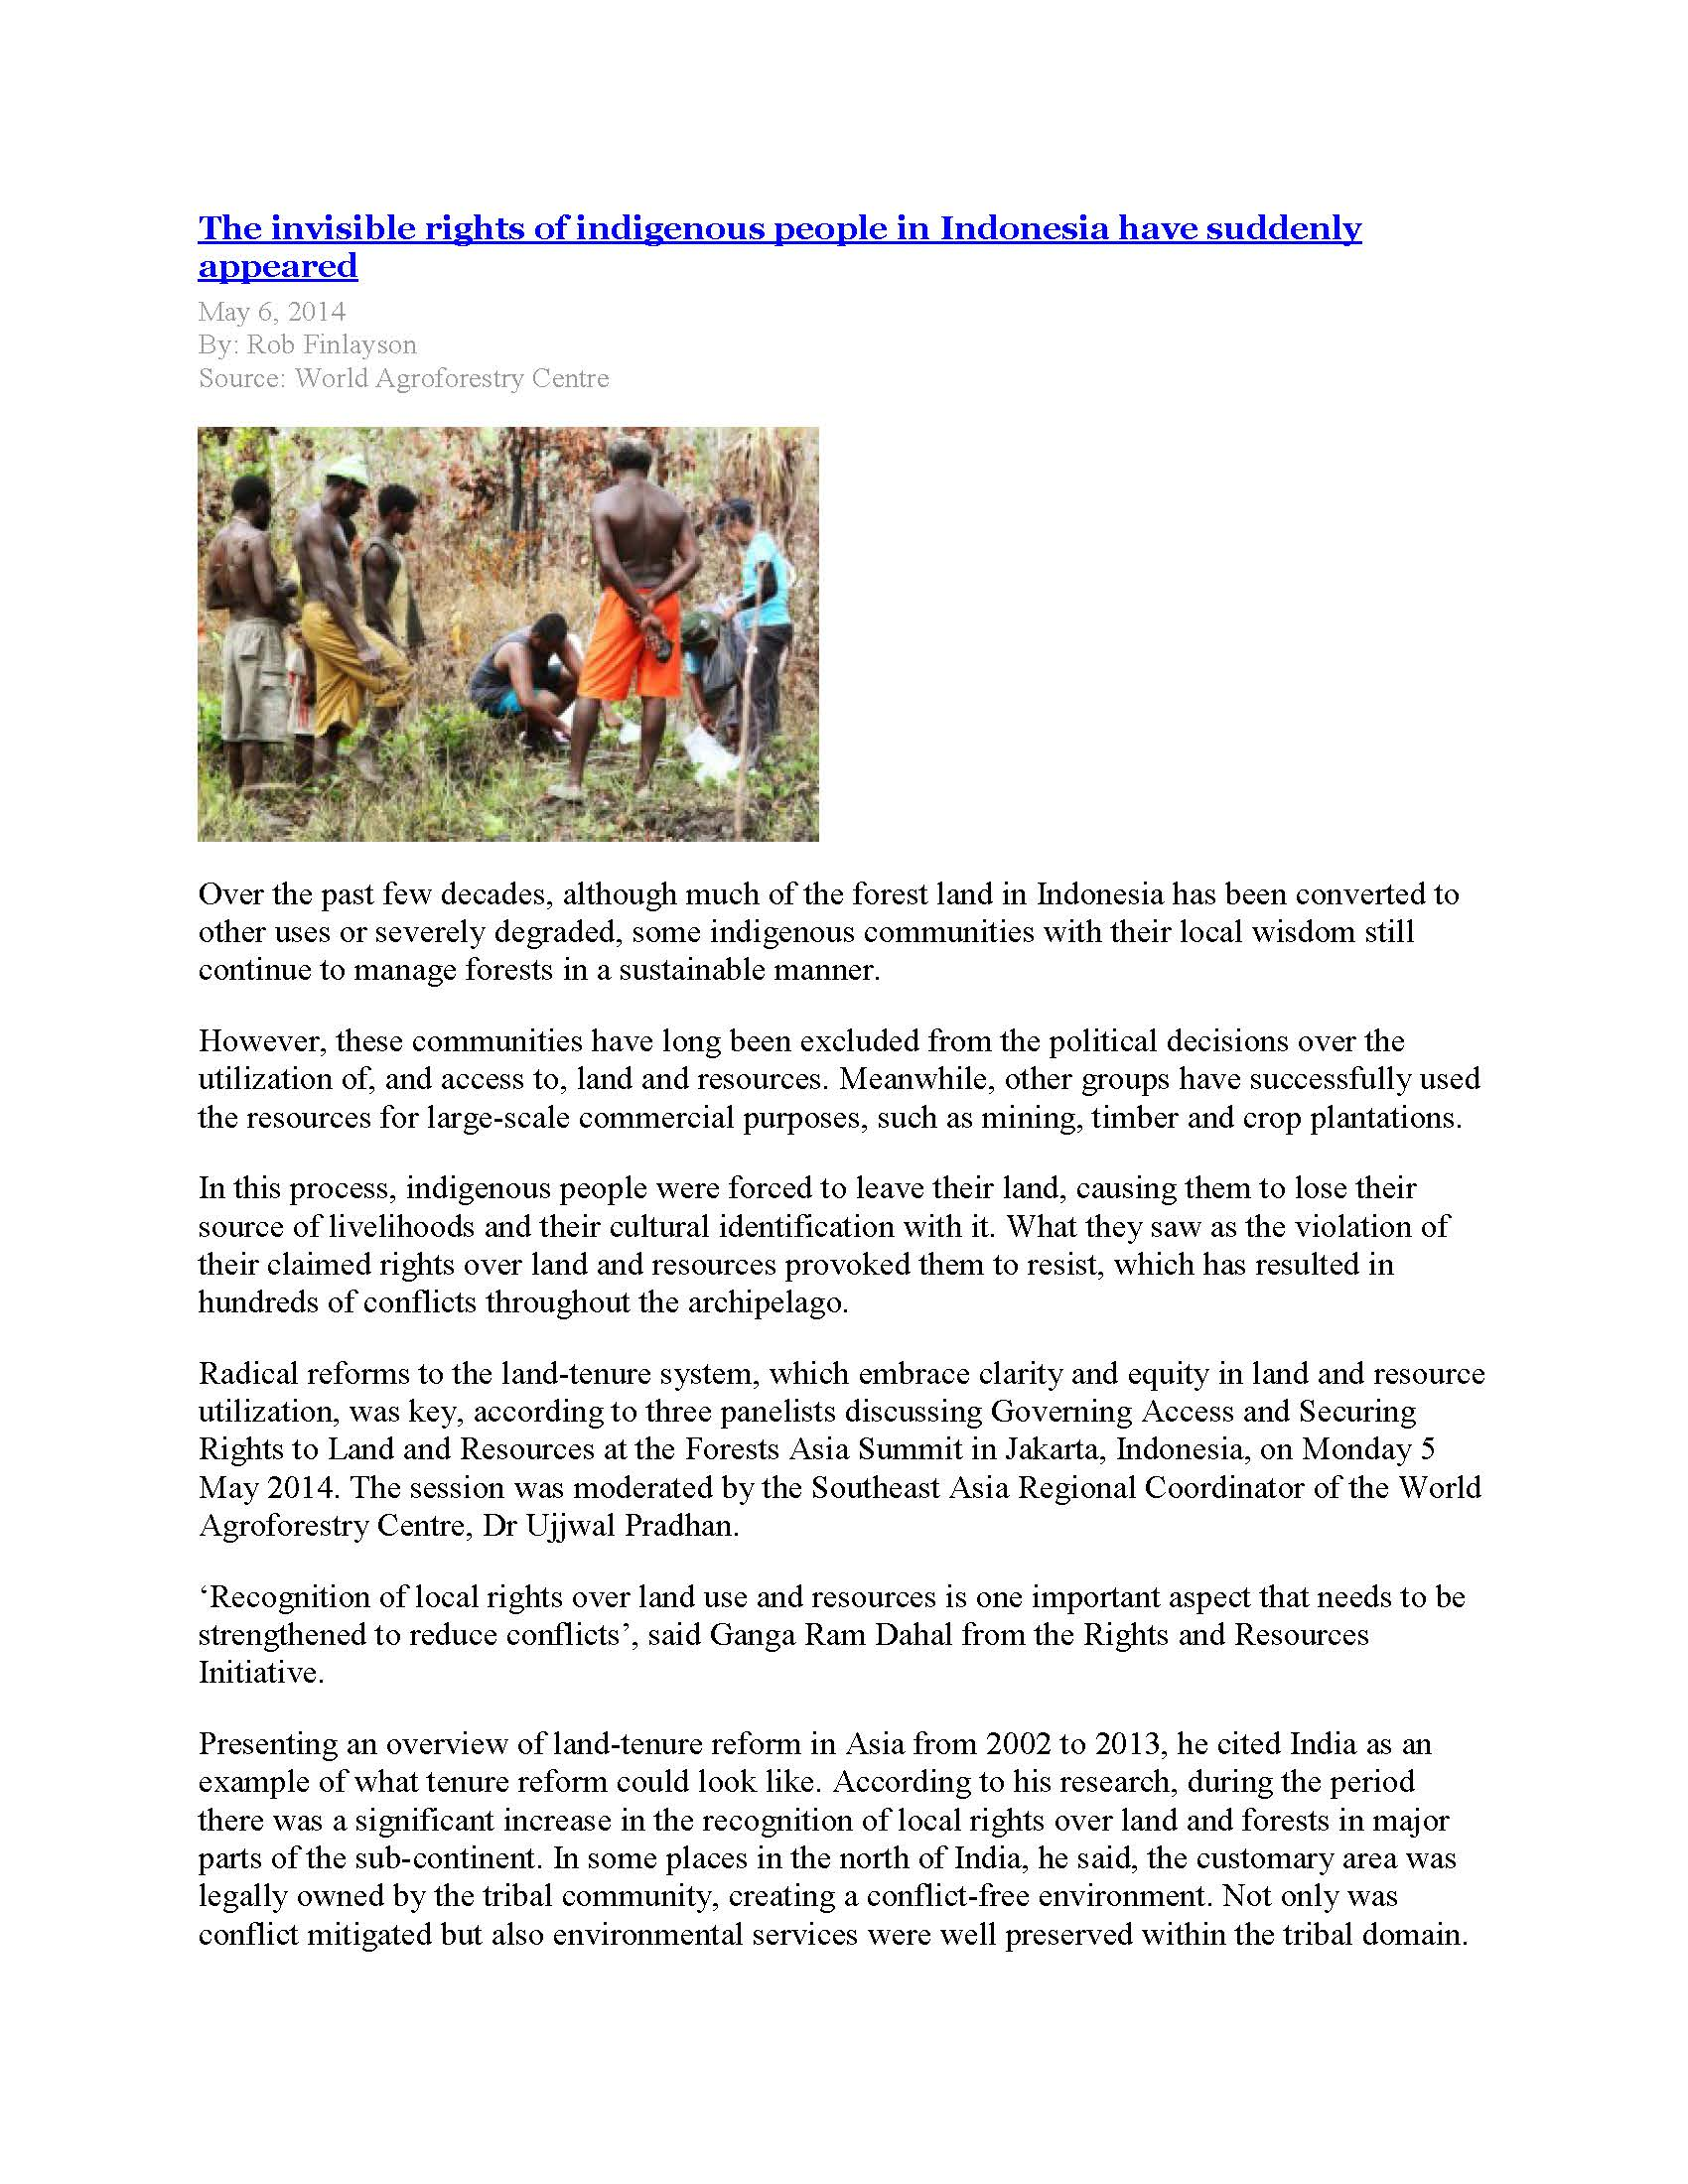 World AgroForestry Centre: The invisible rights of